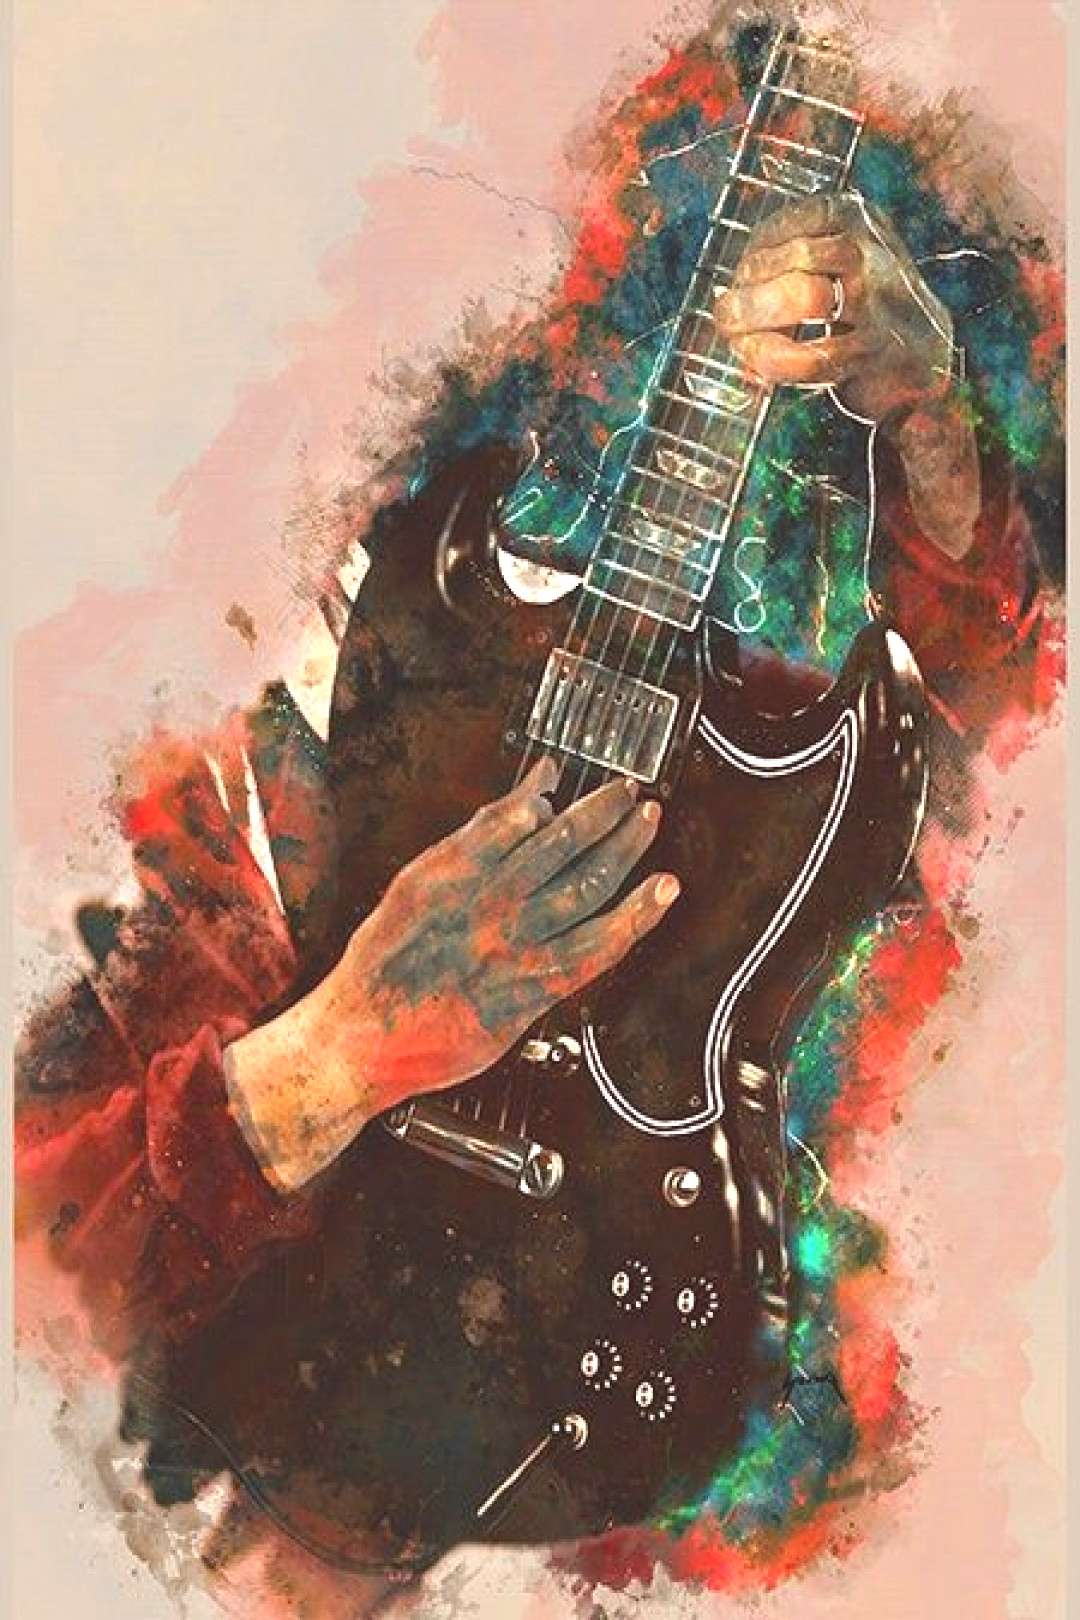 Angus Youngs electric guitar 12x16quot guitar art, music wall art, music poster, music room decor, ha